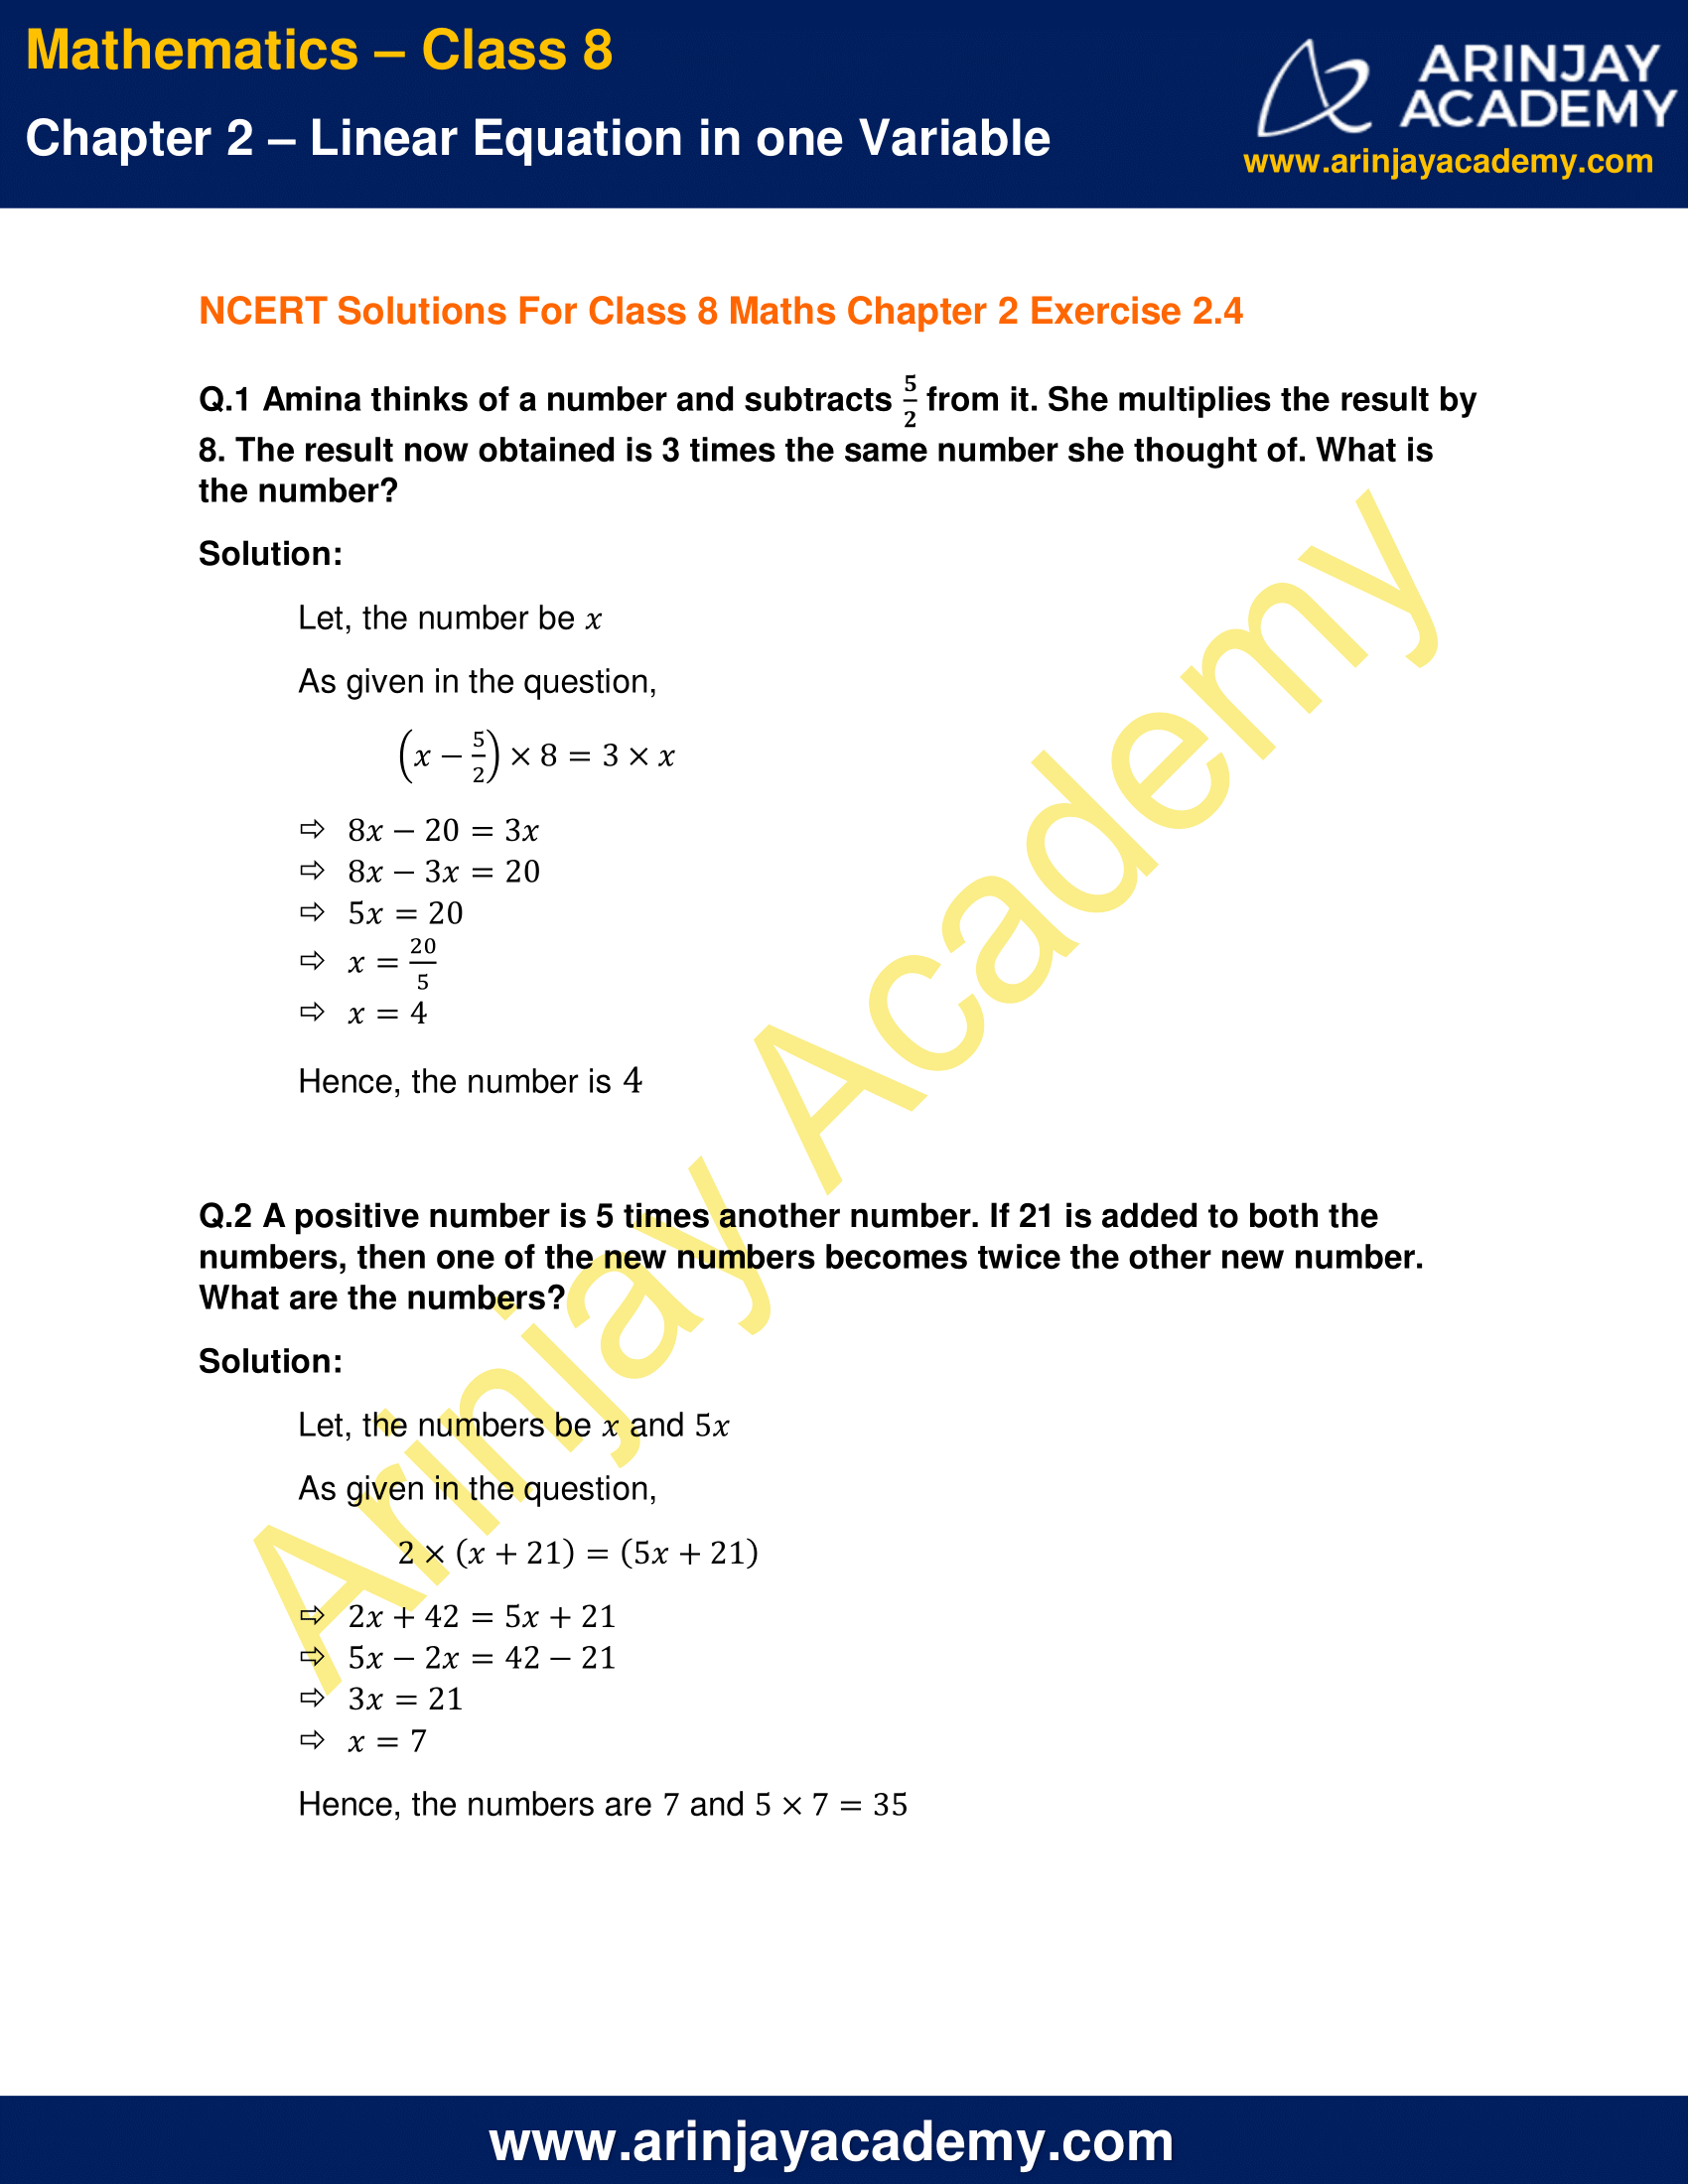 NCERT Solutions for Class 8 Maths Chapter 2 Exercise 2.4 image 1